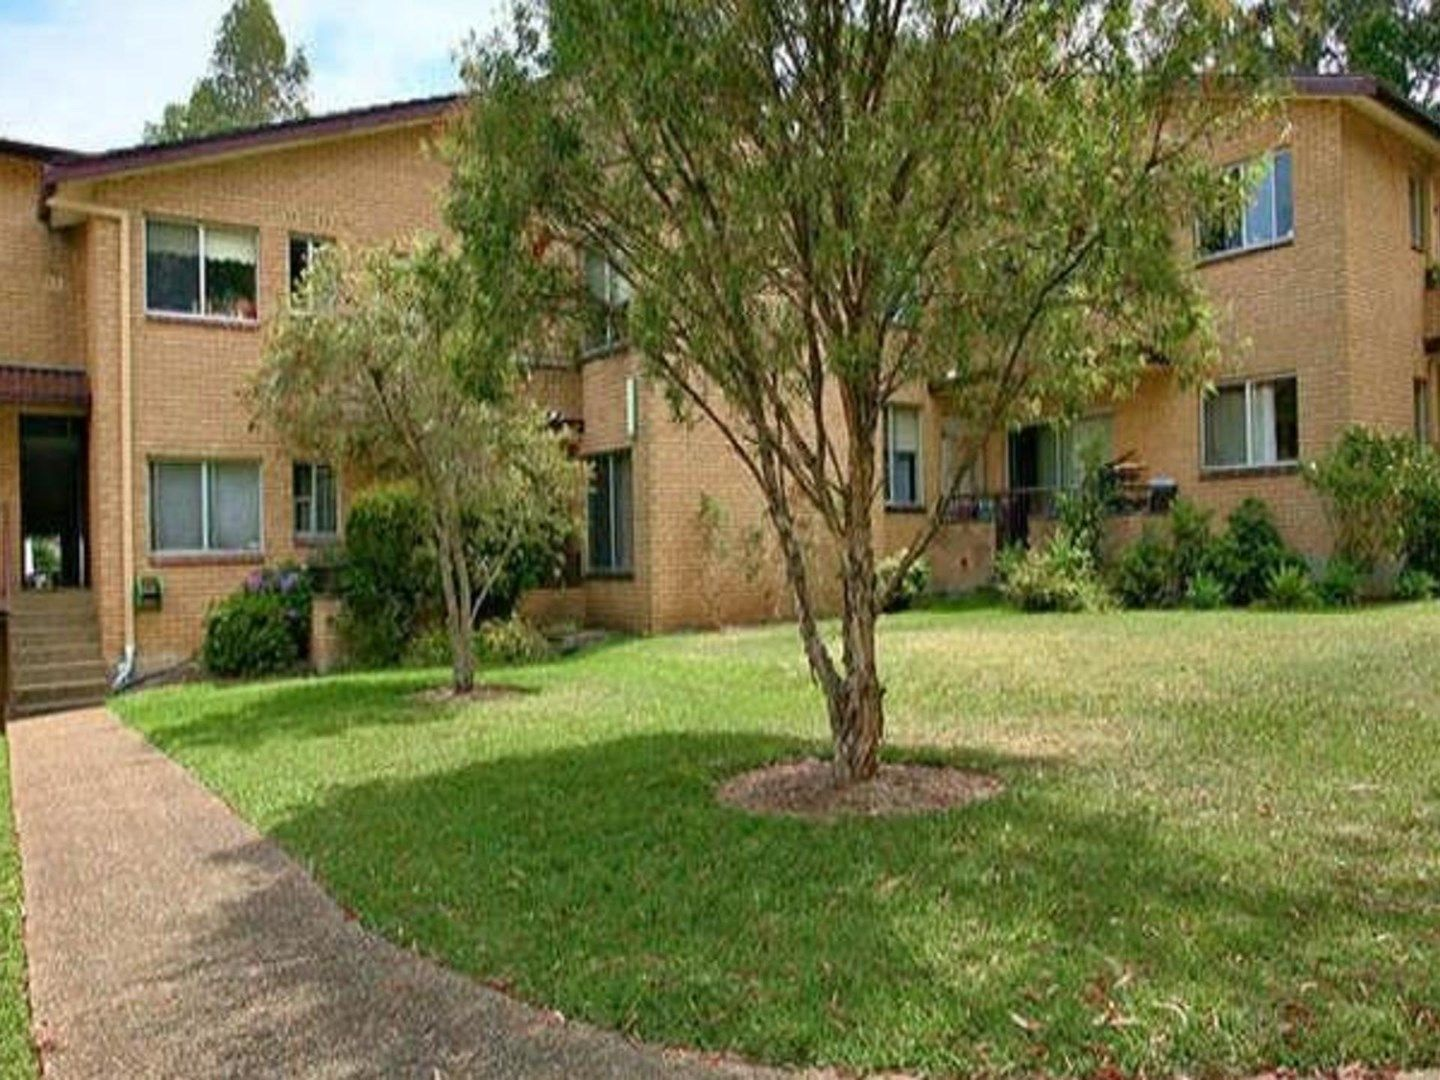 25/159-161 Epping Road, Macquarie Park NSW 2113, Image 0